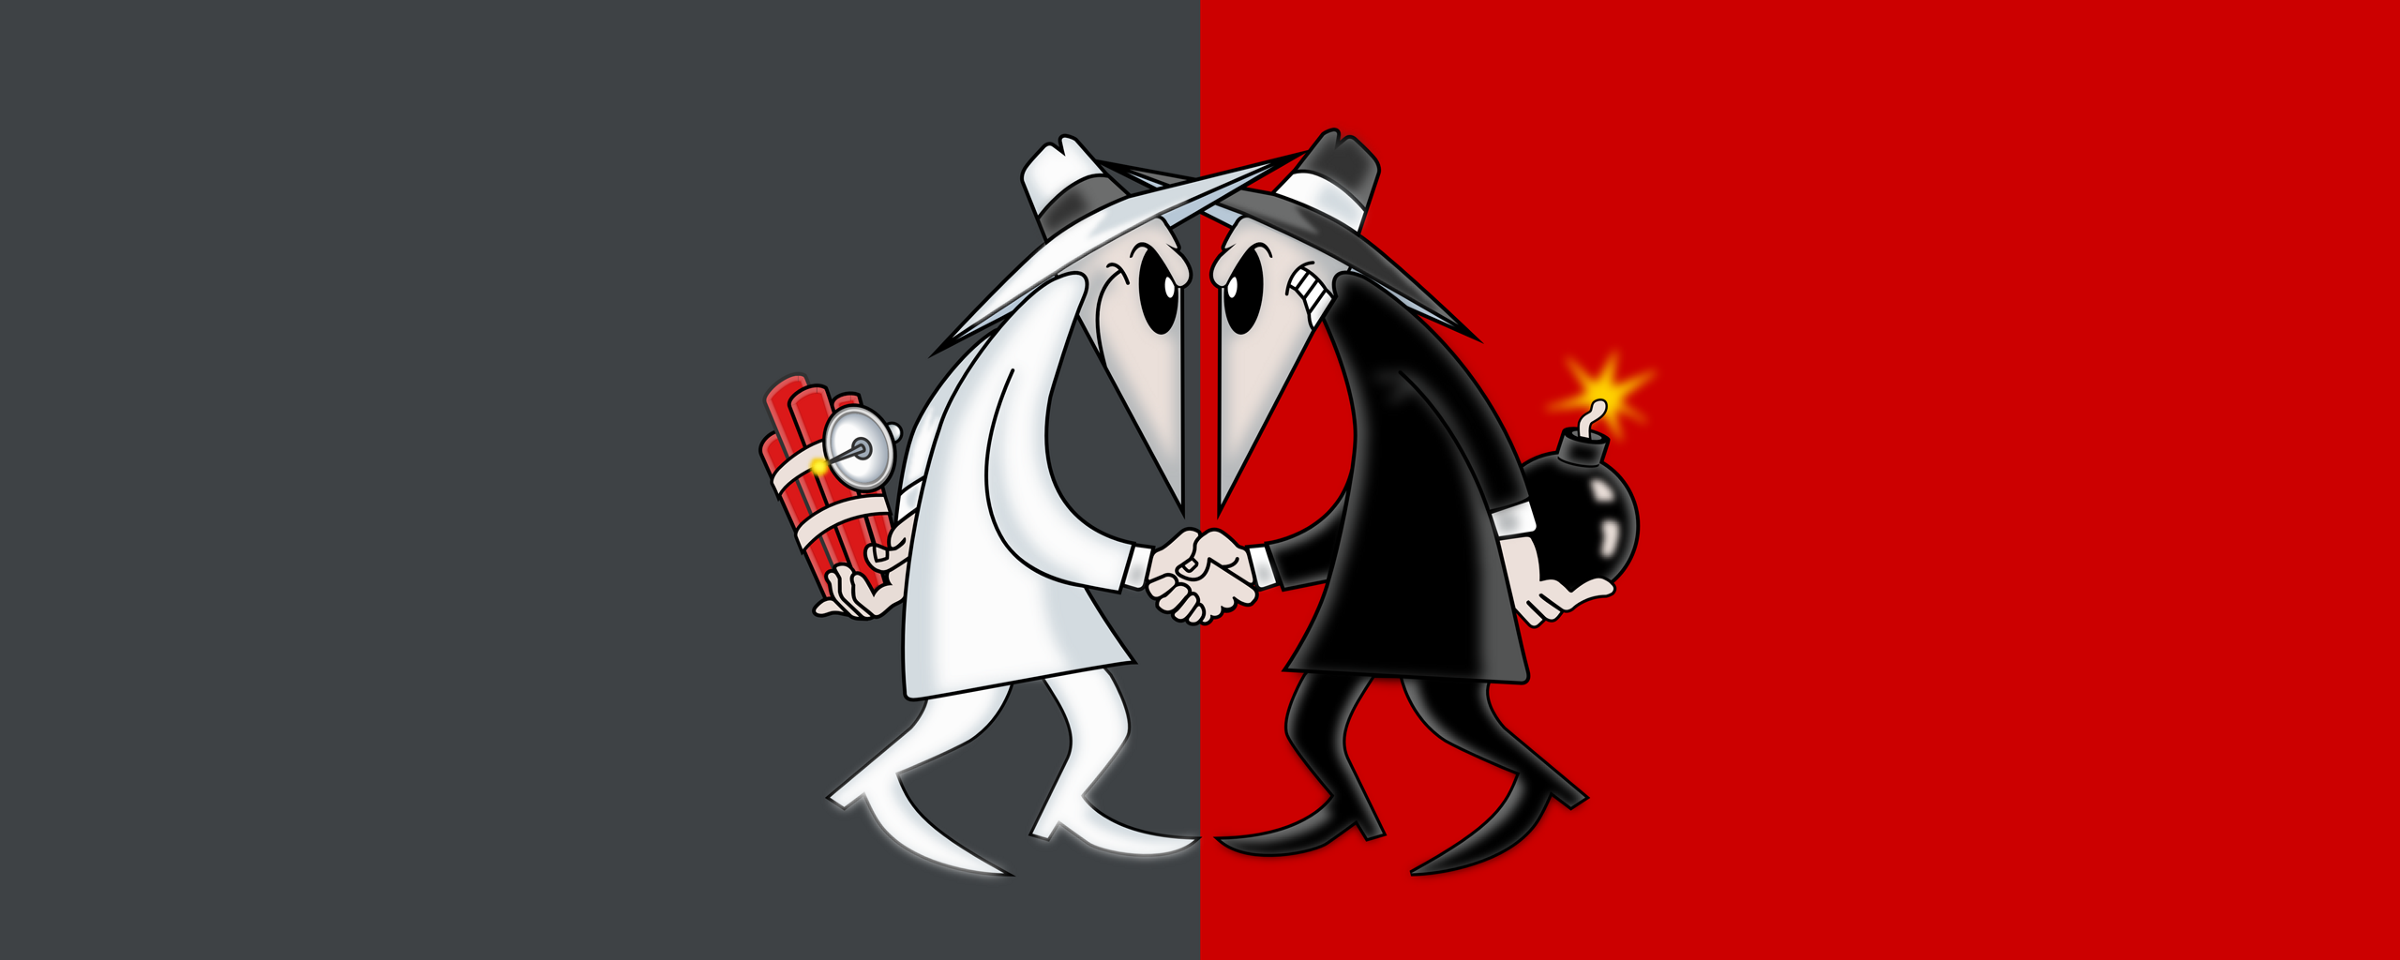 "An image of the two spys from the comic ""Spy vs. Spy"" shaking hands"